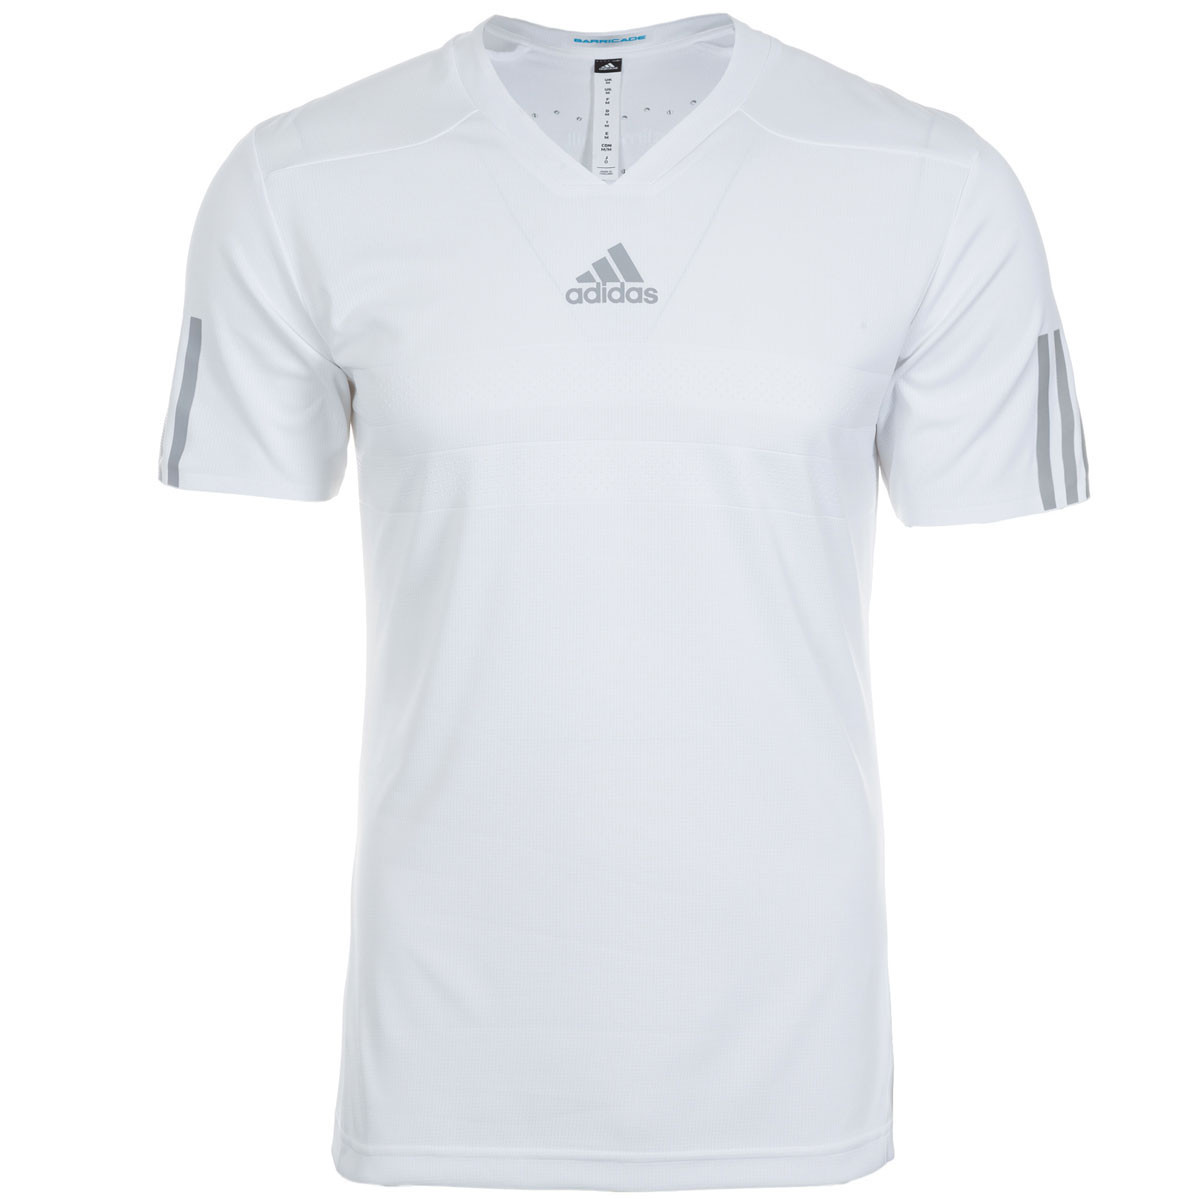 164b97fc2abfcd h m s Remaining. Adidas Men s Andy Murray Barricade T-Shirt ClimaChill Tee  White Sports Athletic